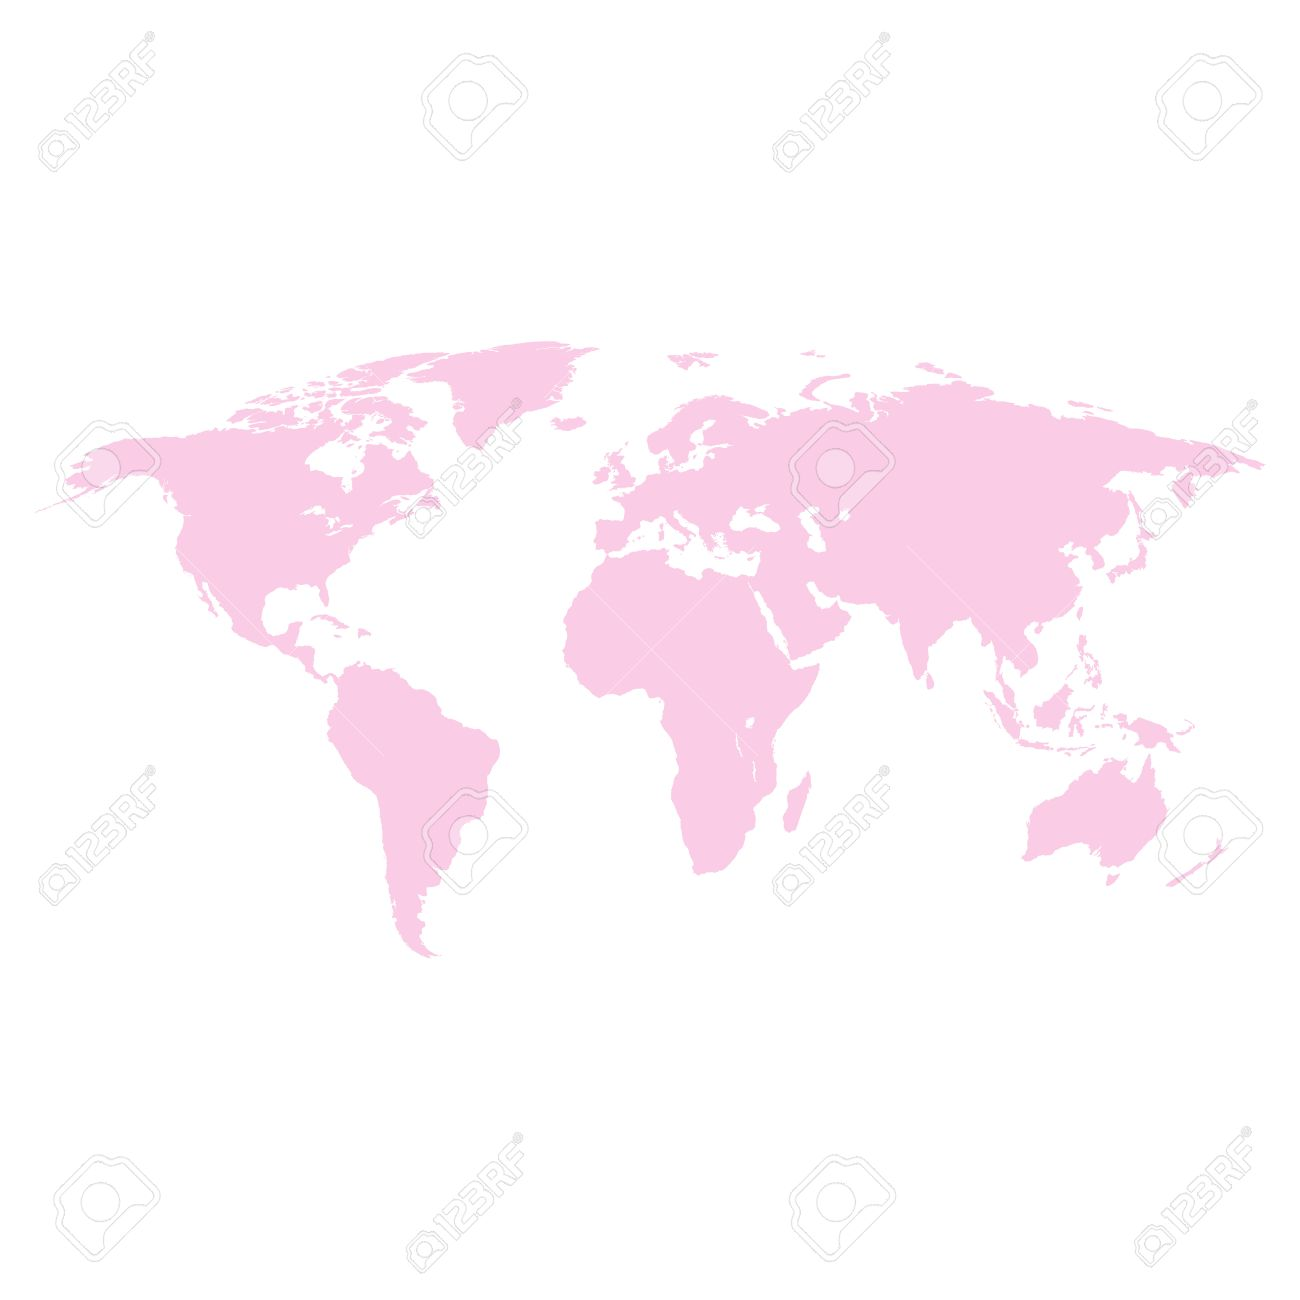 World map pink colored on a white background royalty free cliparts vector world map pink colored on a white background gumiabroncs Image collections